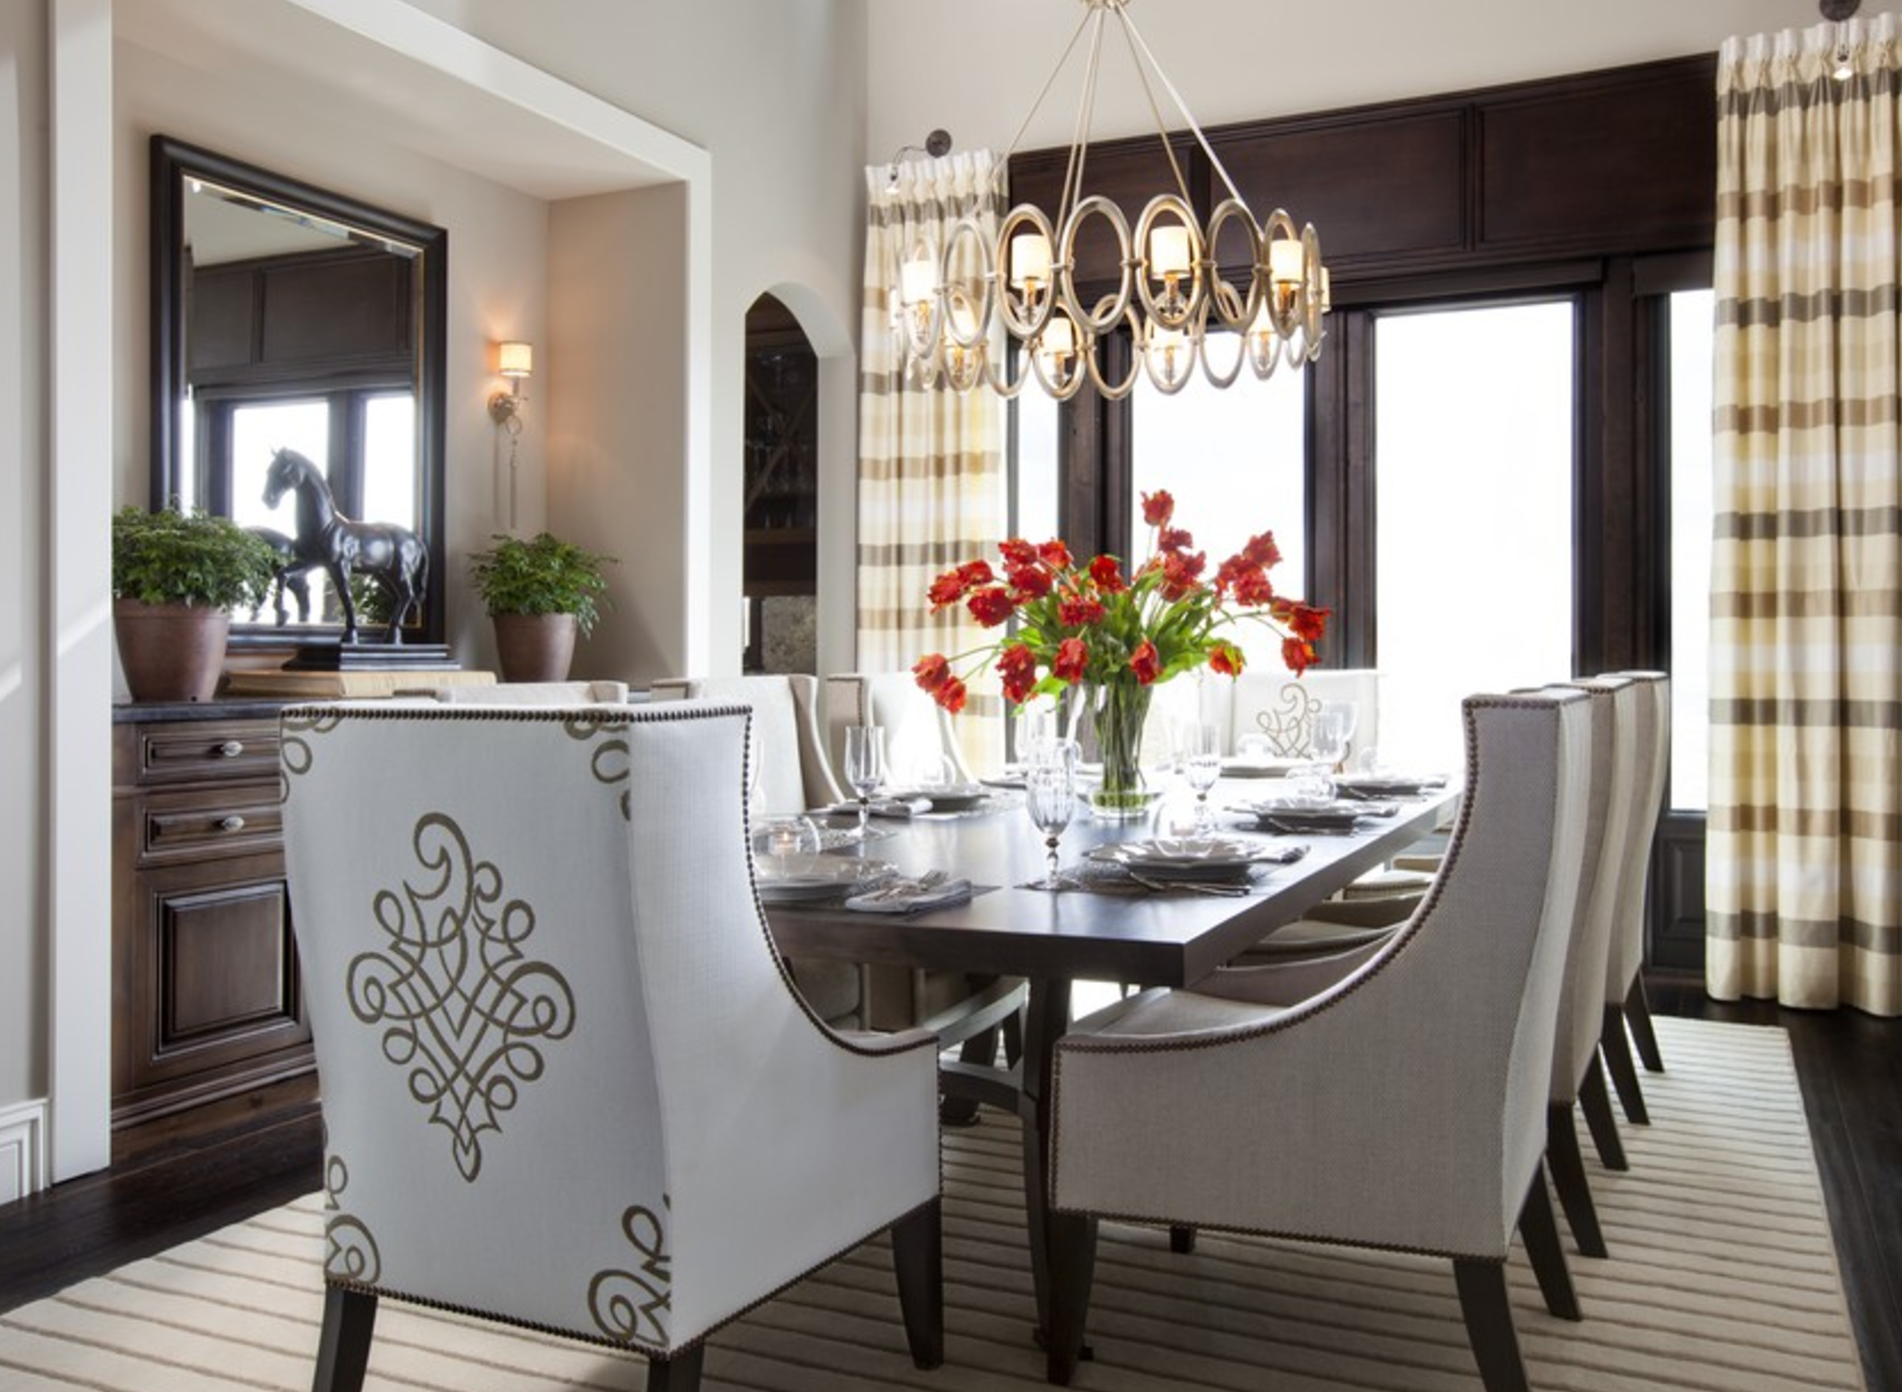 Dining Table Buying Guide: How To Find The Perfect Dining With Regard To Well Known Transitional 6 Seating Casual Dining Tables (View 7 of 30)